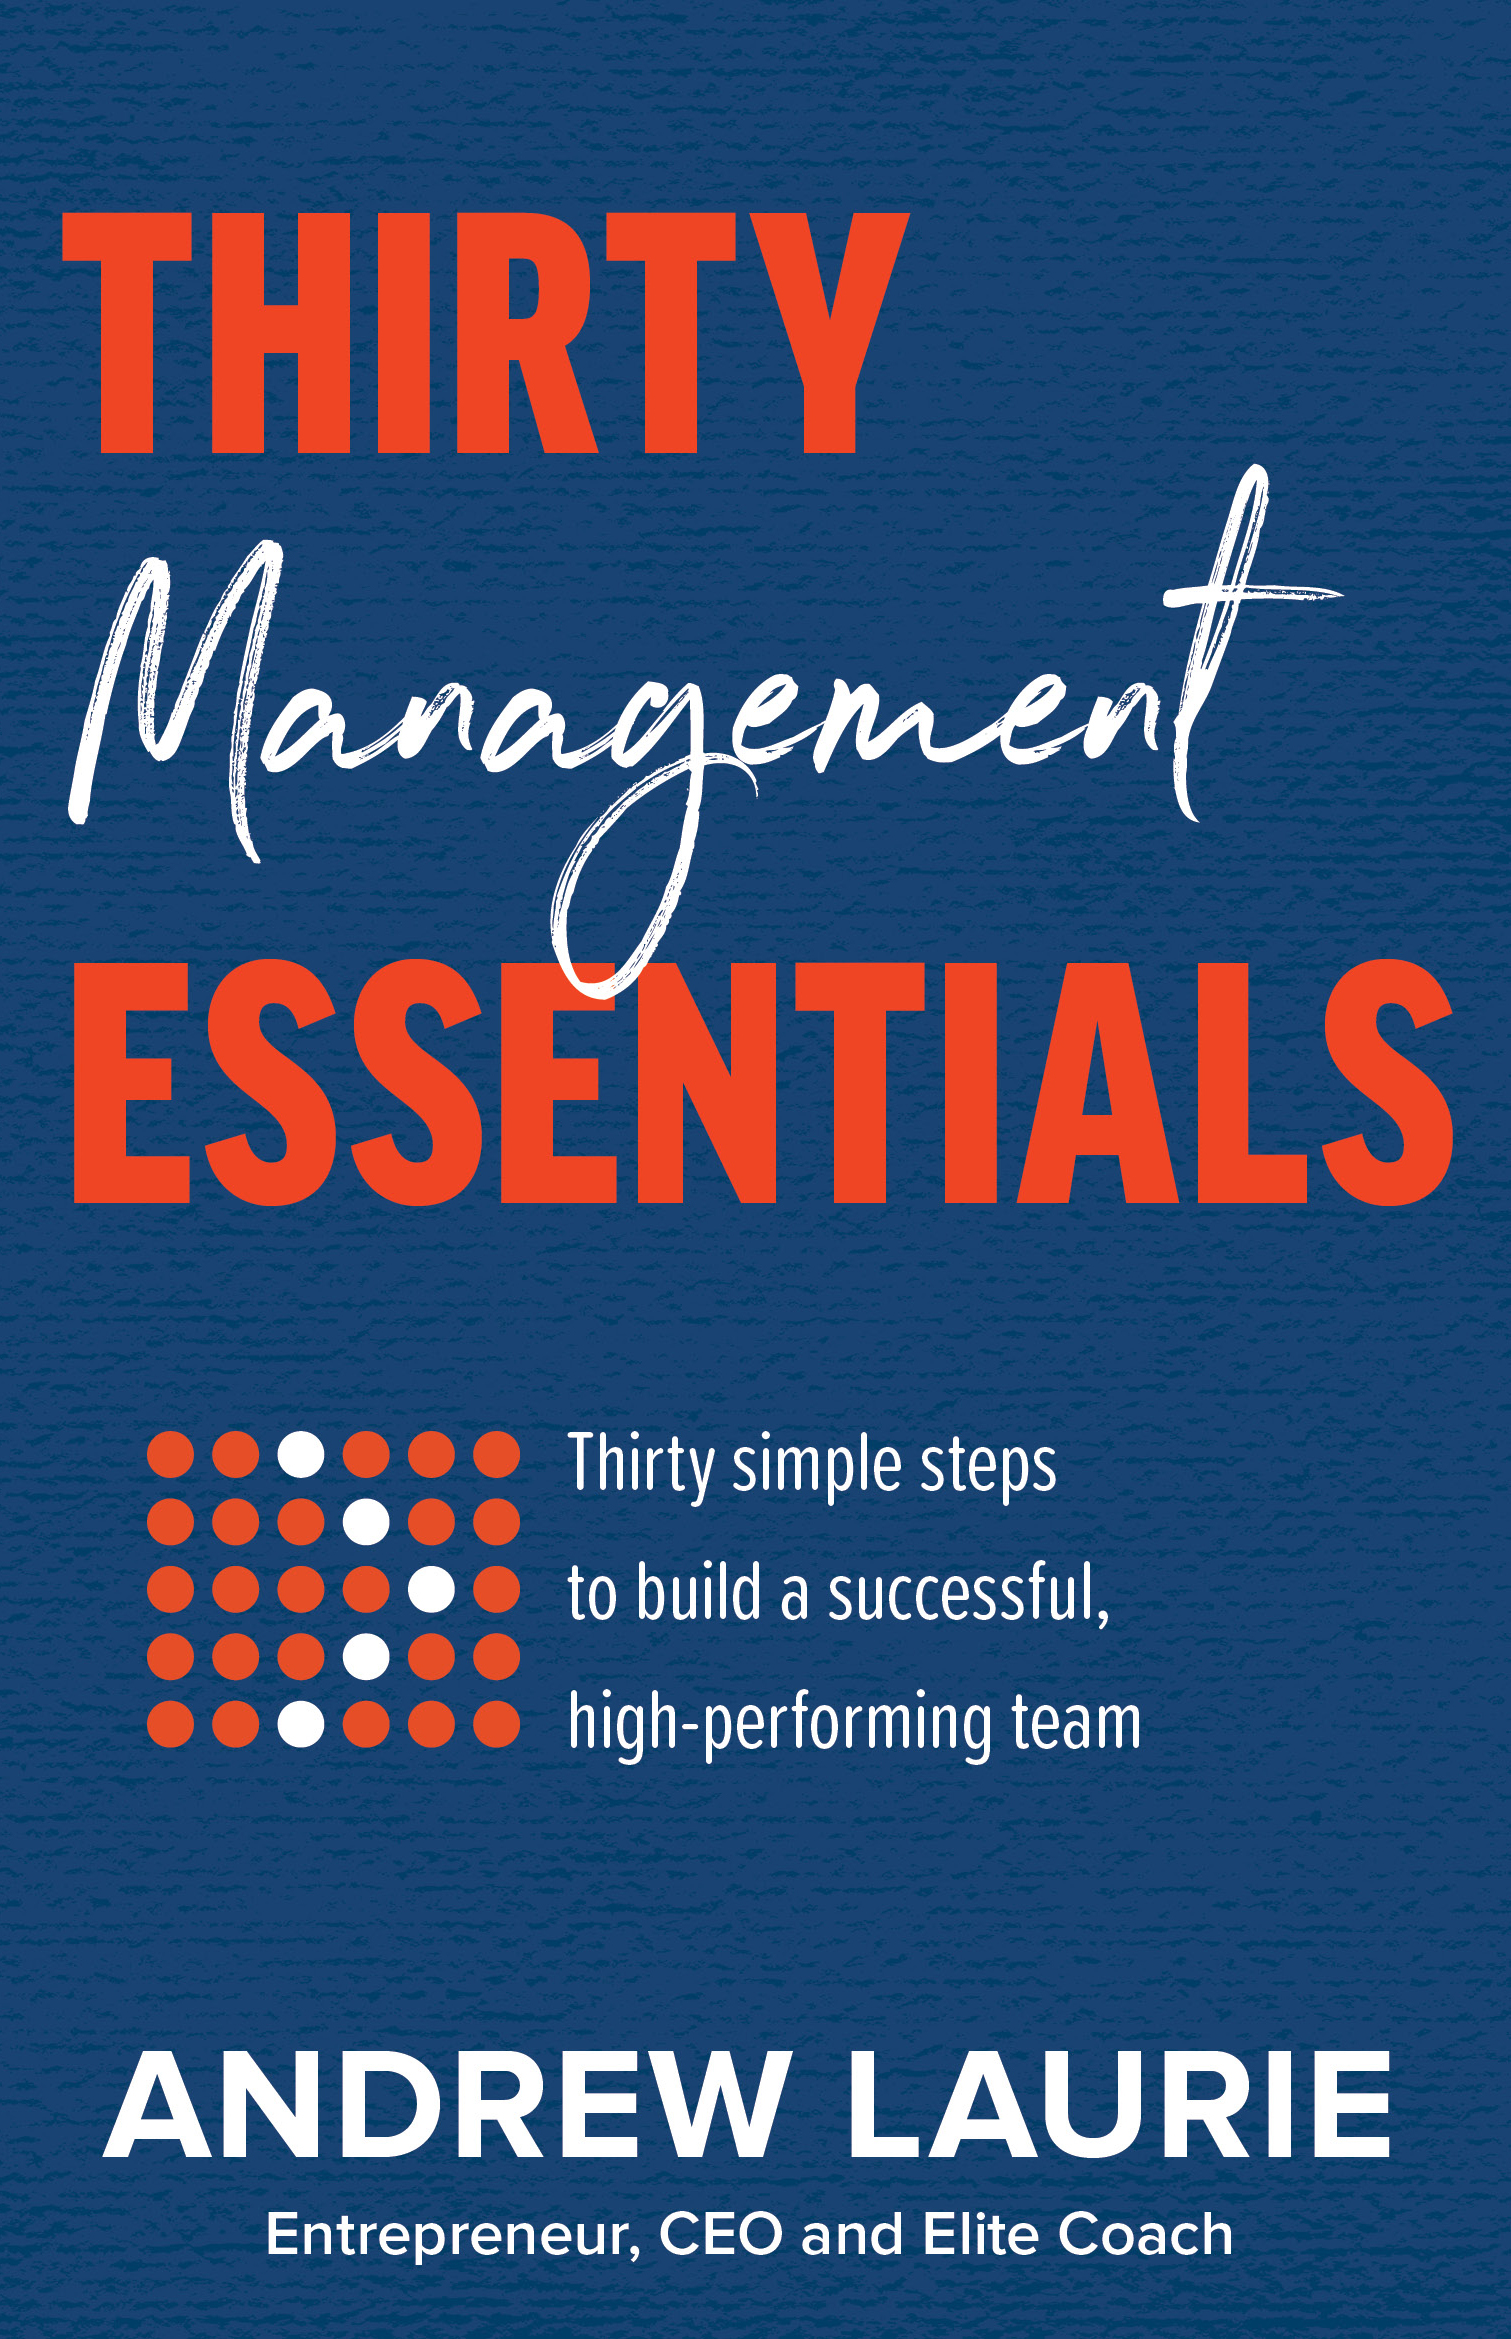 Thirty Essentials Management_cover_FINALISED.high res.jpg